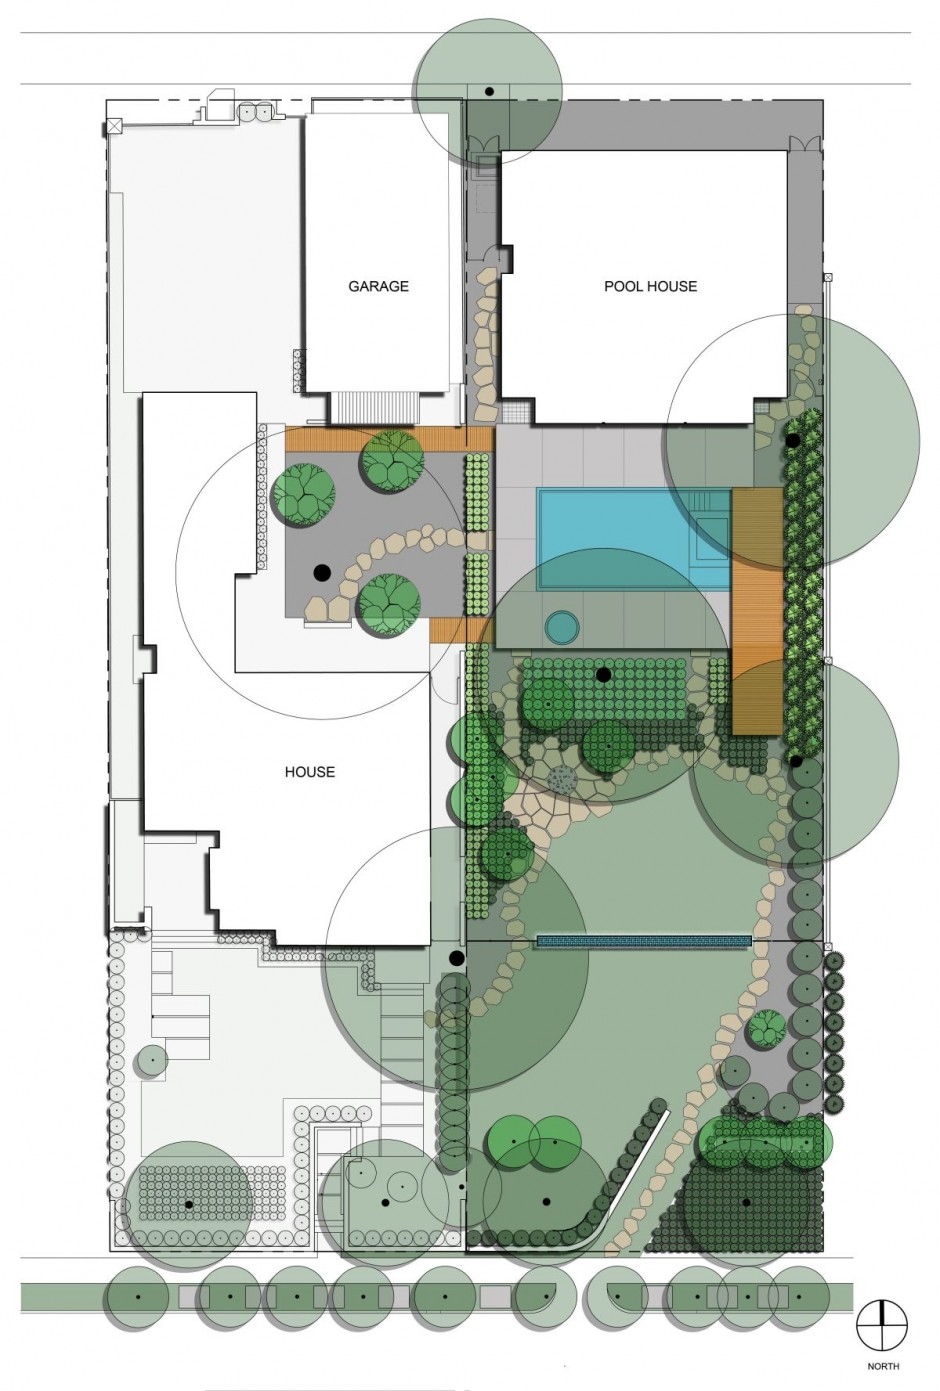 House garden design drawing - Site Plan Drawing Courtesy Of Cunningham Architects